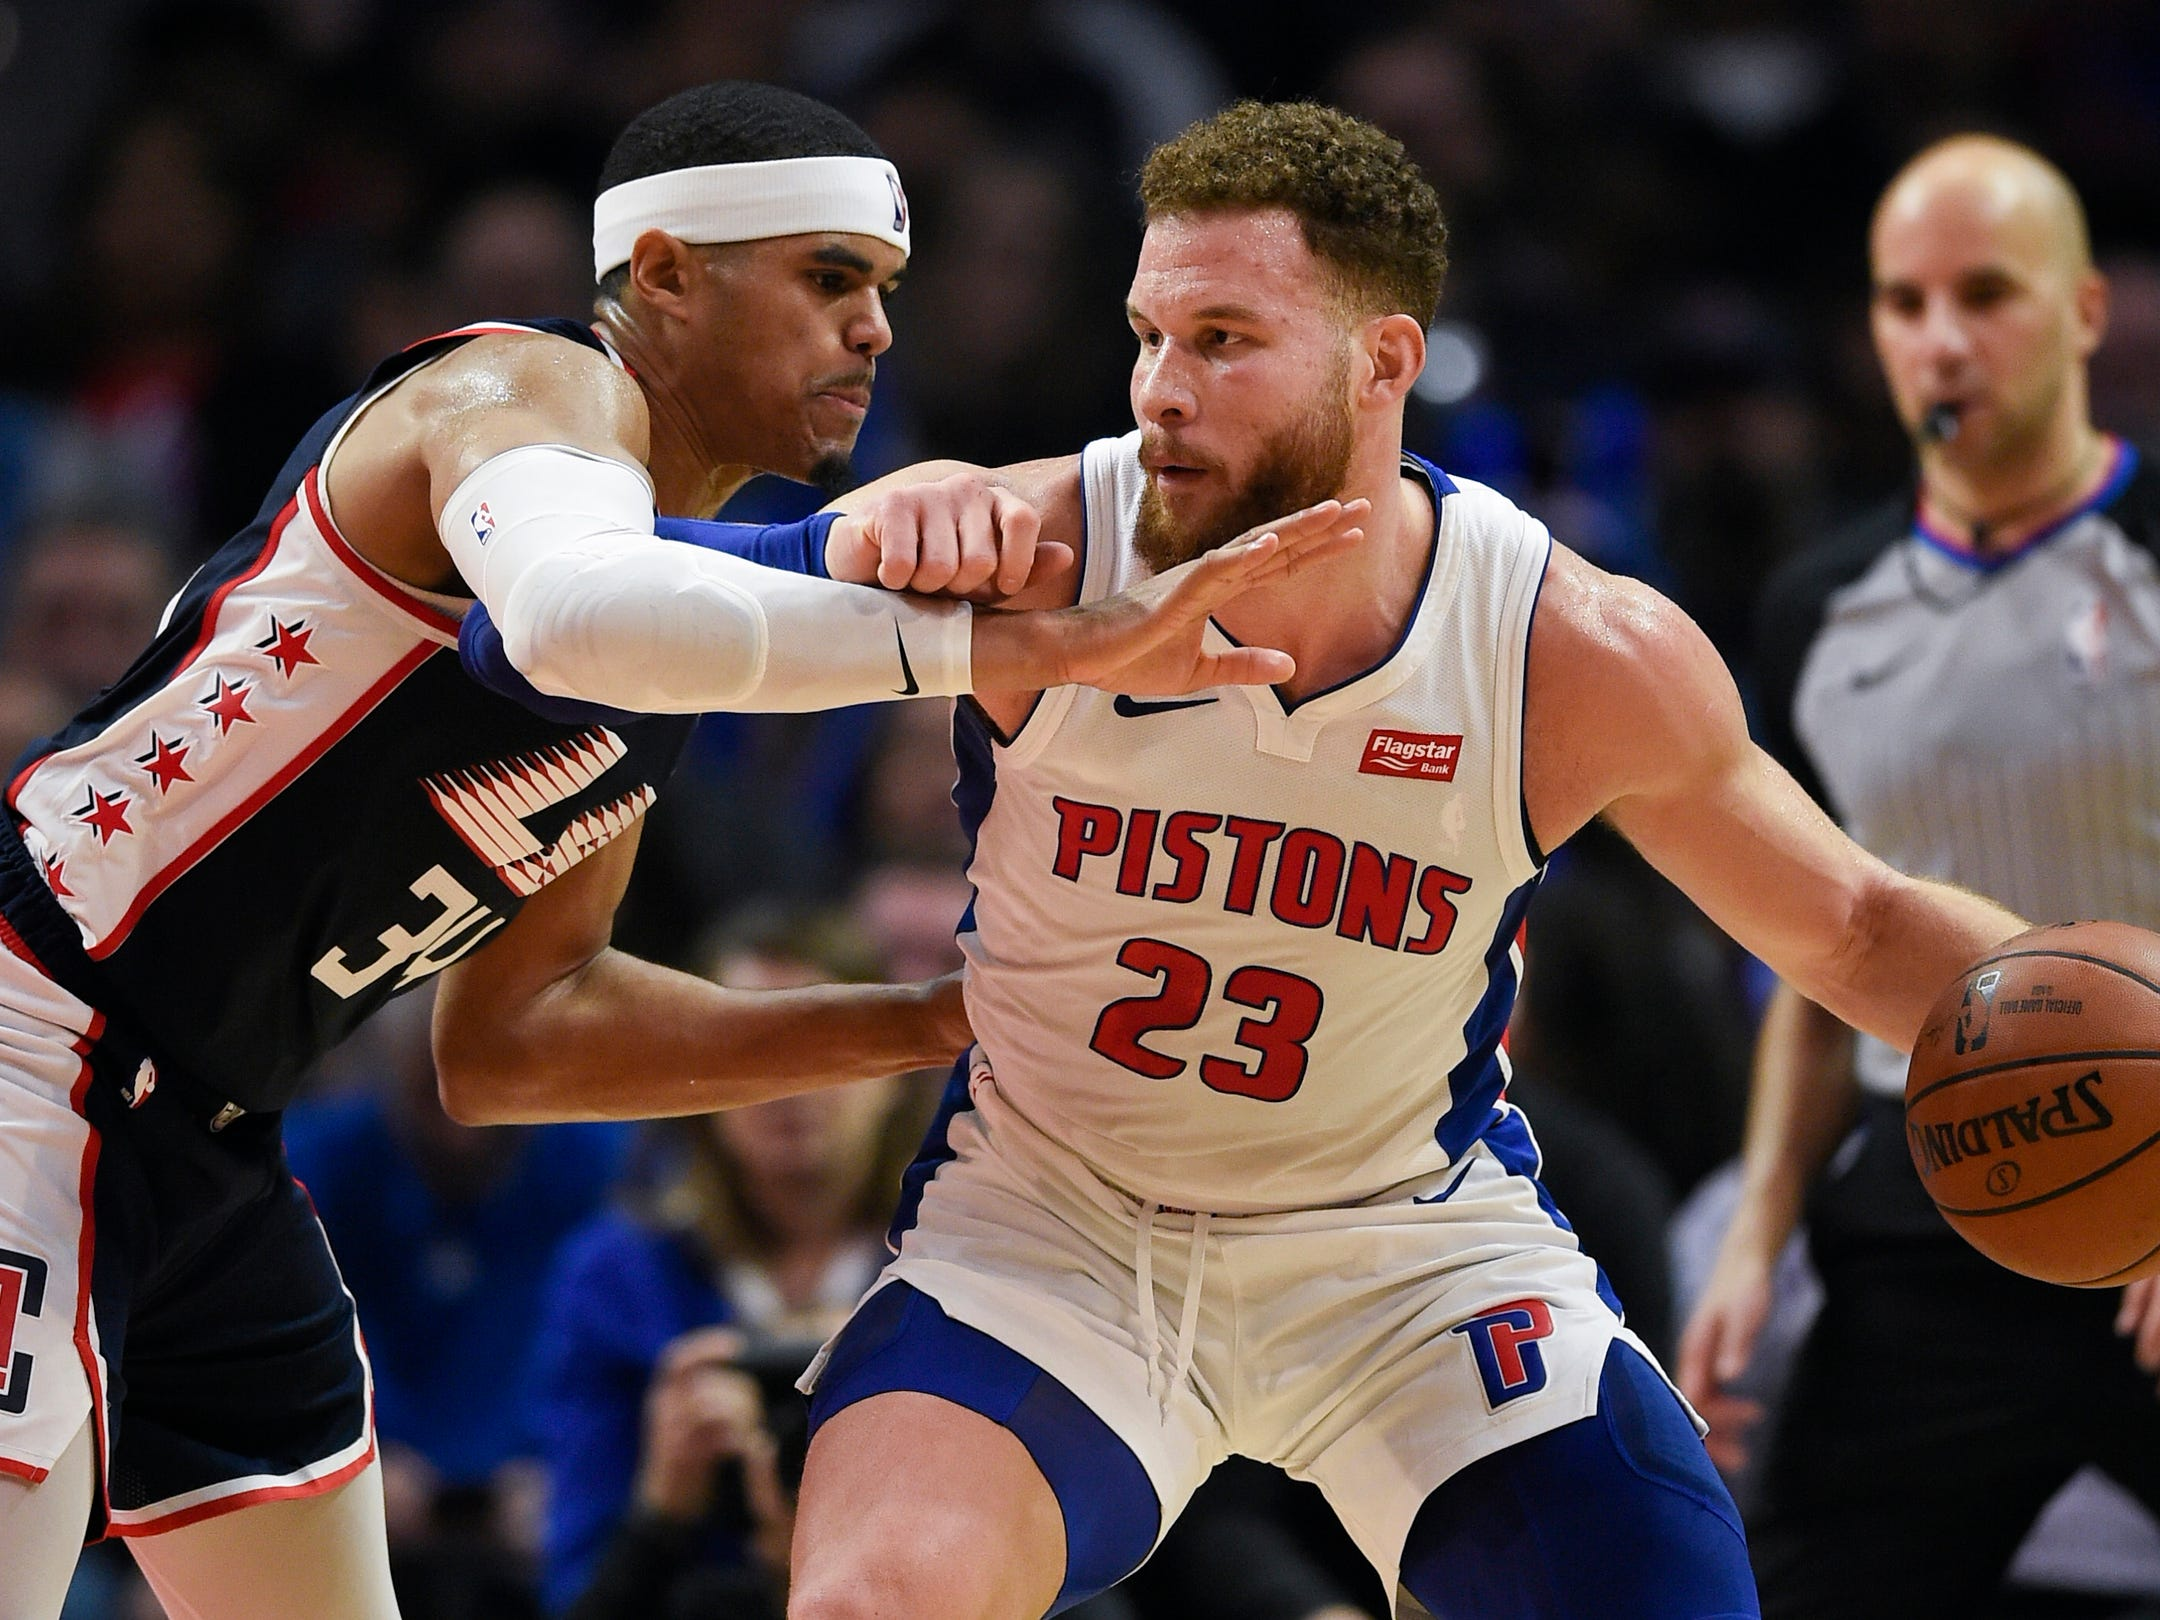 Detroit Pistons forward Blake Griffin posts up on Los Angeles Clippers forward Tobias Harris during the third quarter at Staples Center, Saturday, Jan. 12, 2019, in Los Angeles.